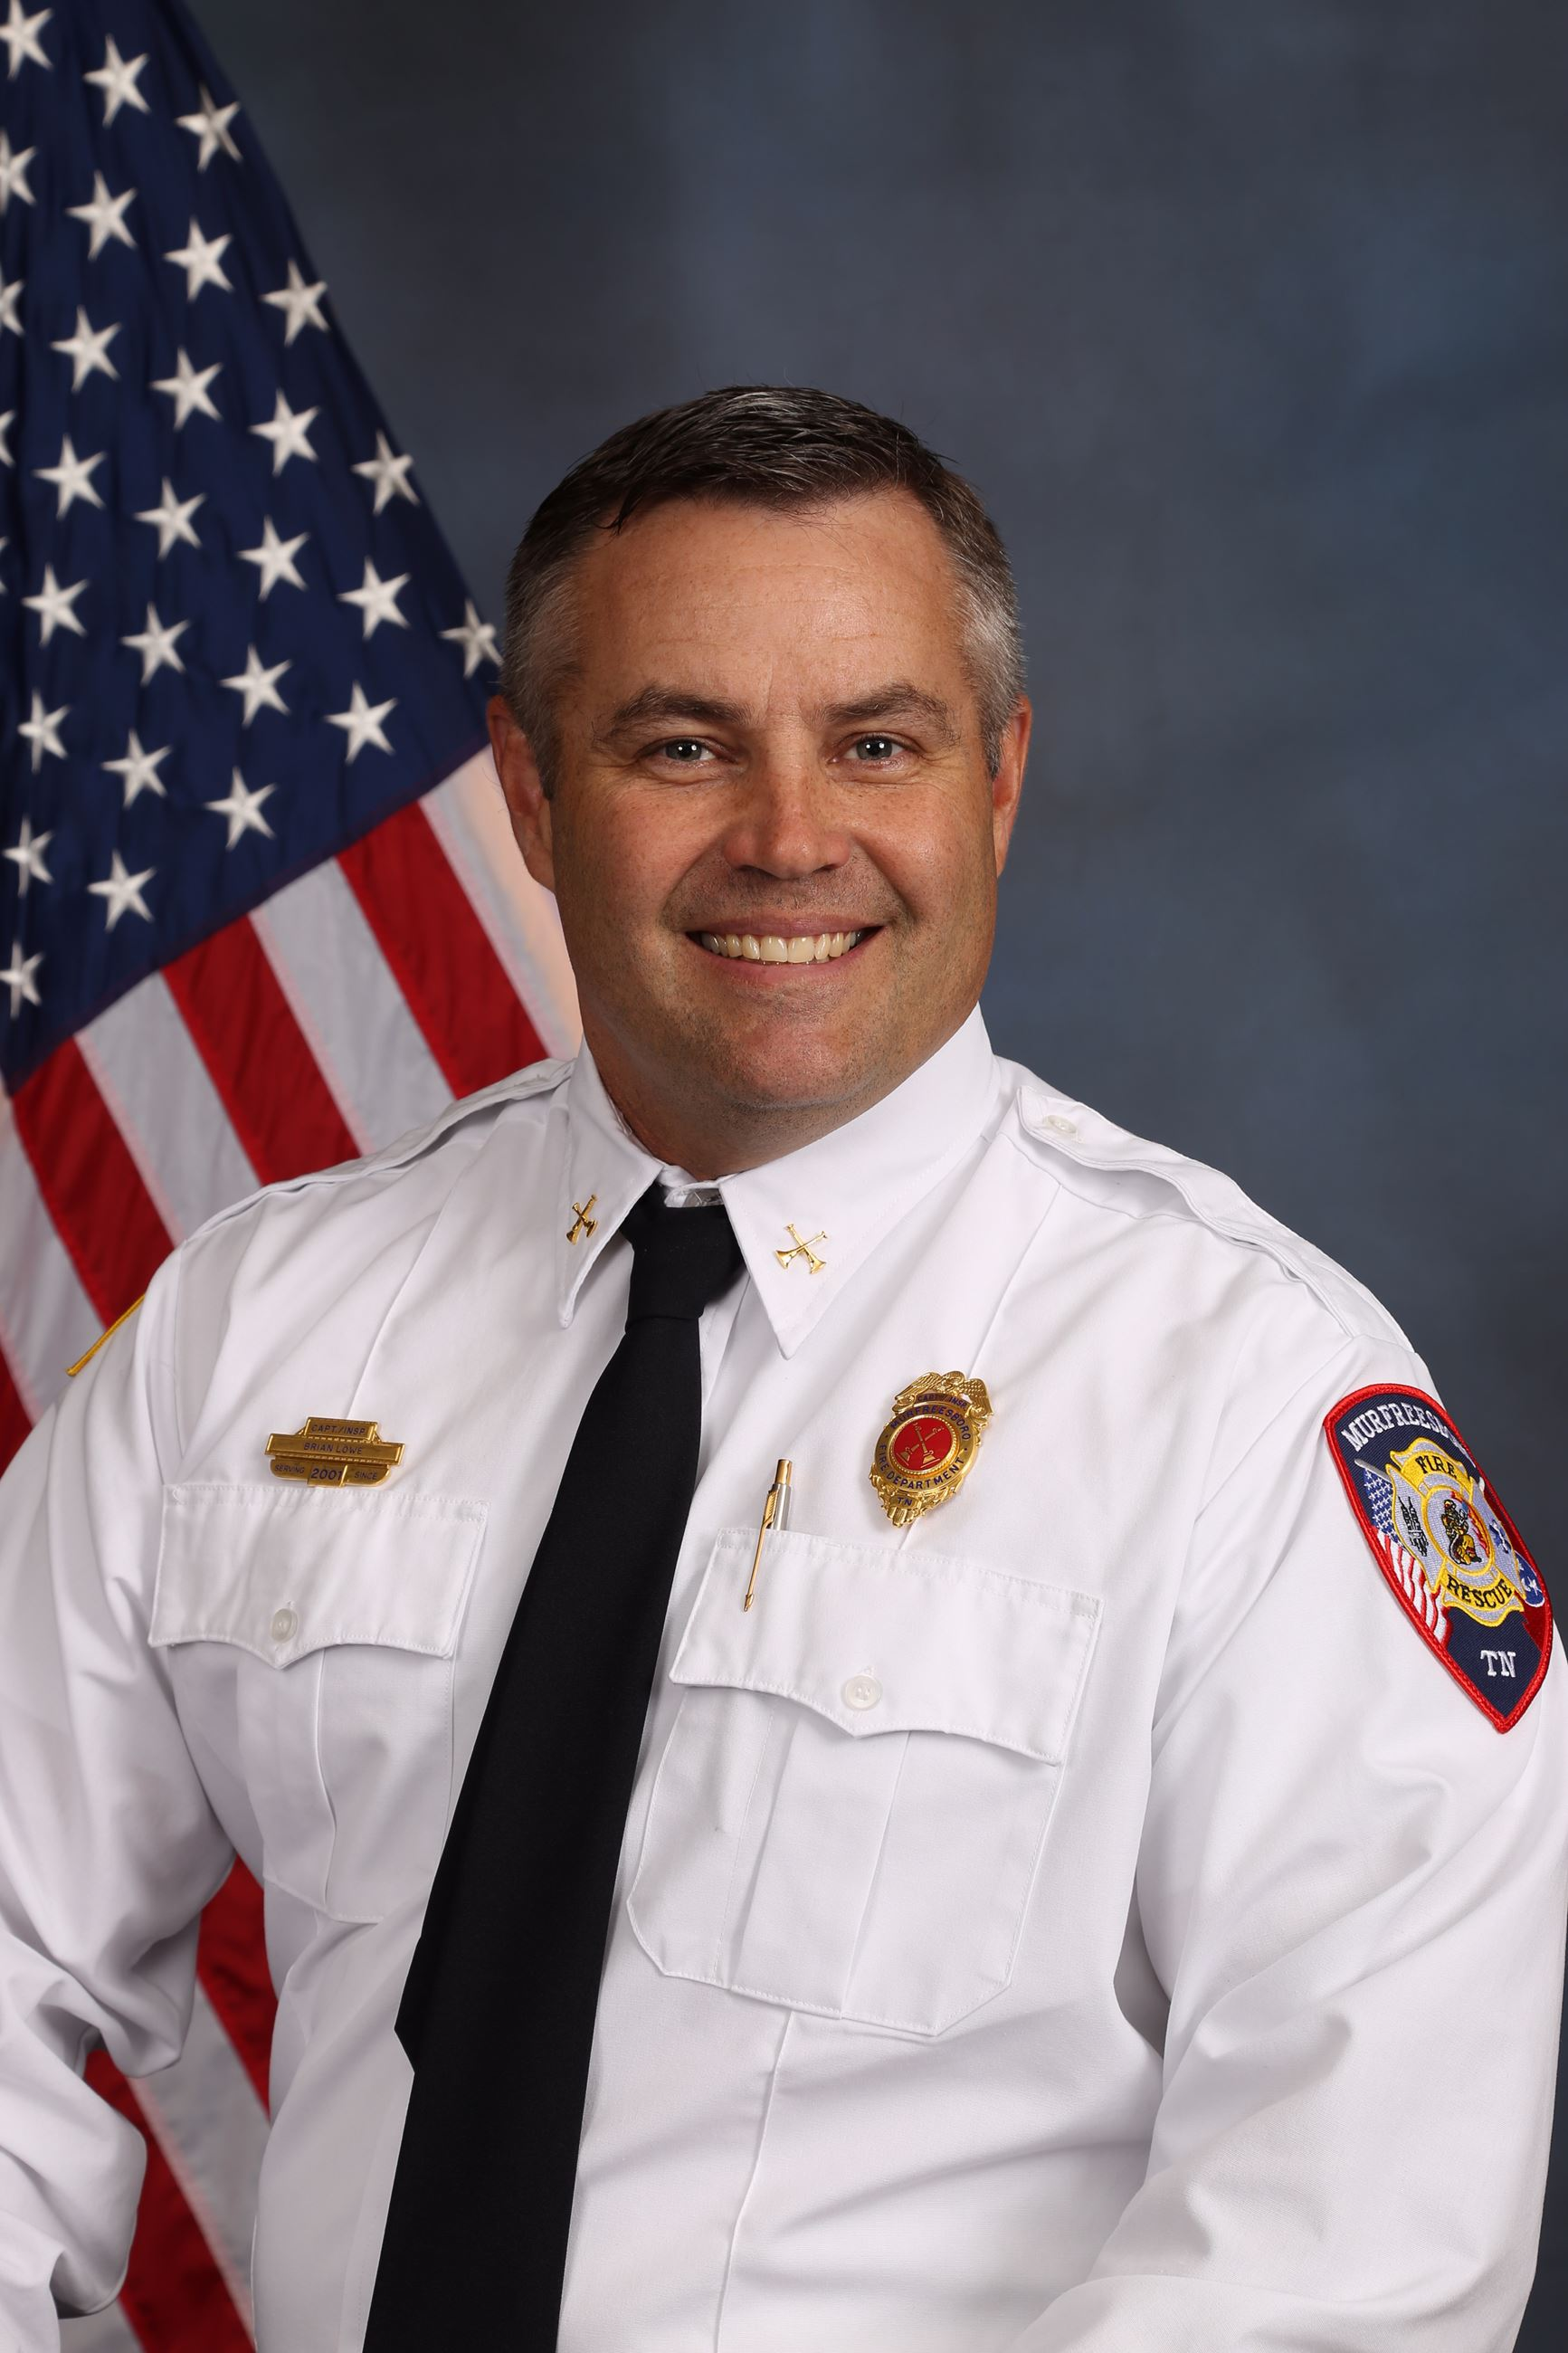 Assistant Chief Brian Lowe